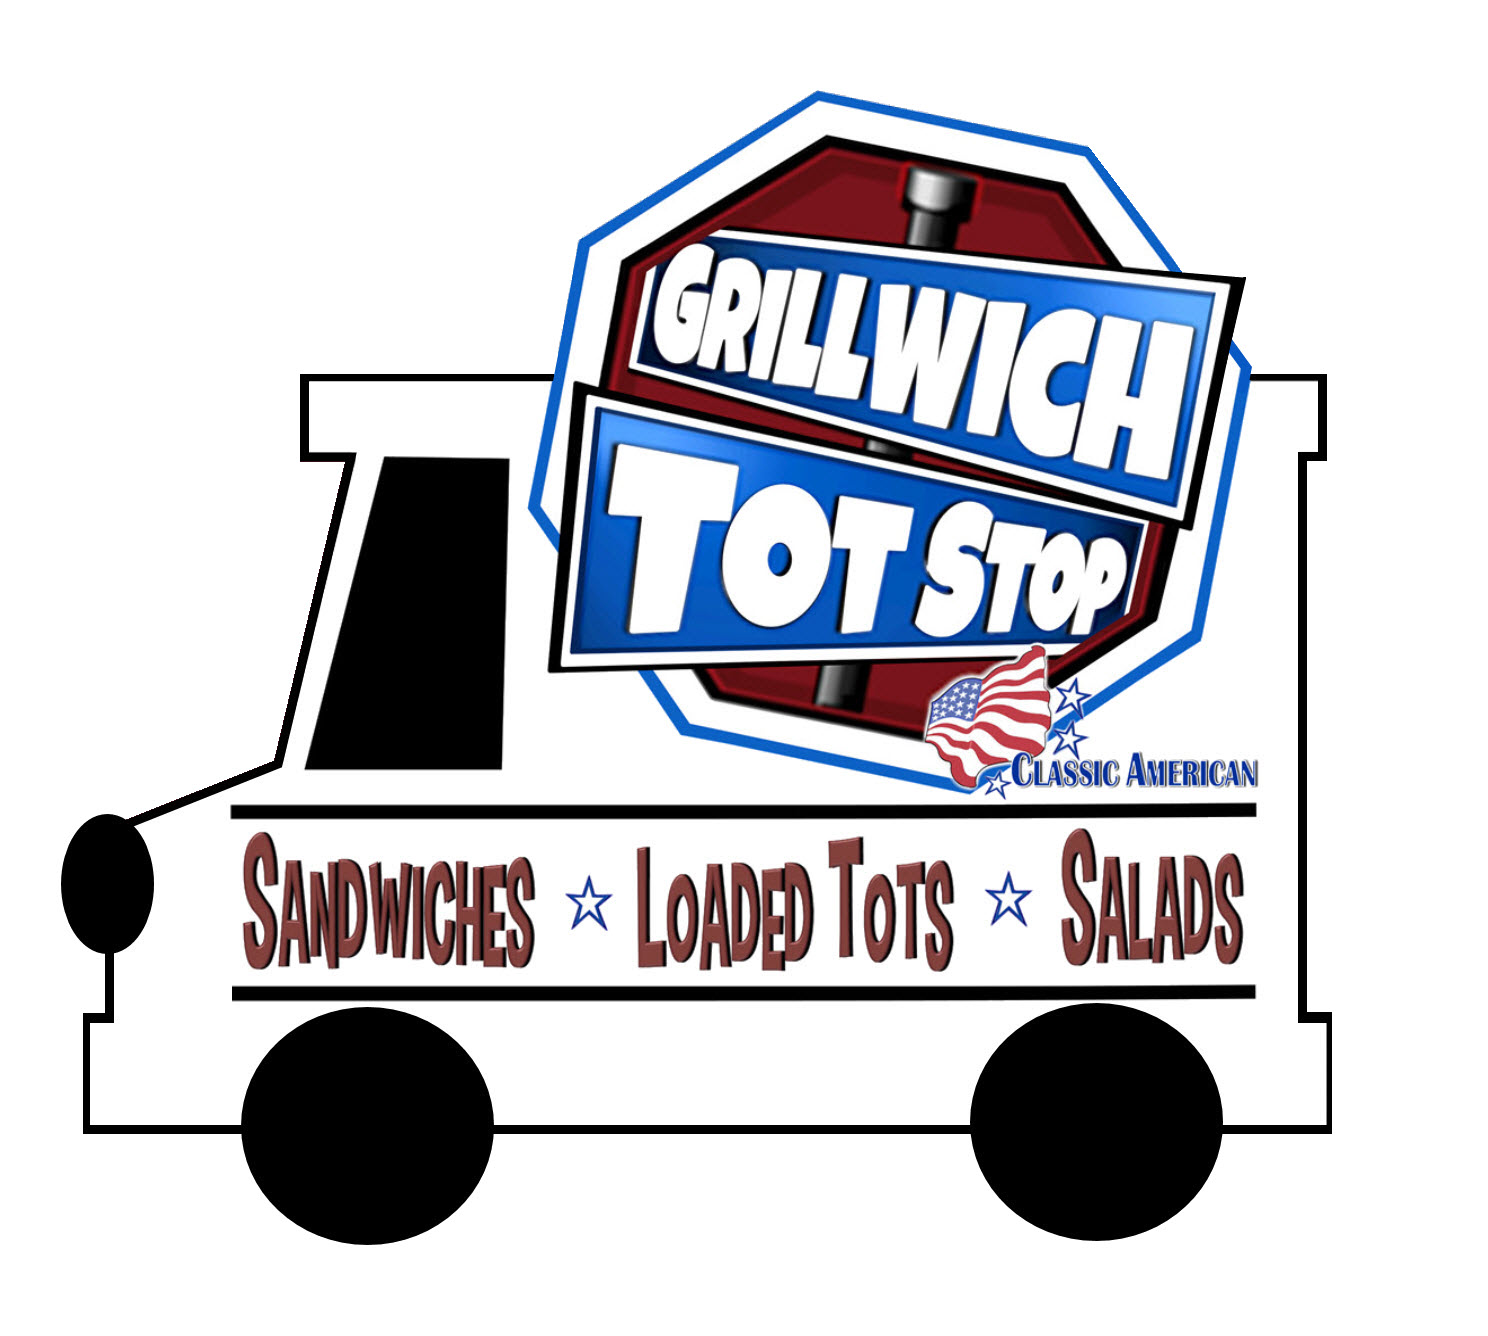 GrillWich Tot Stop